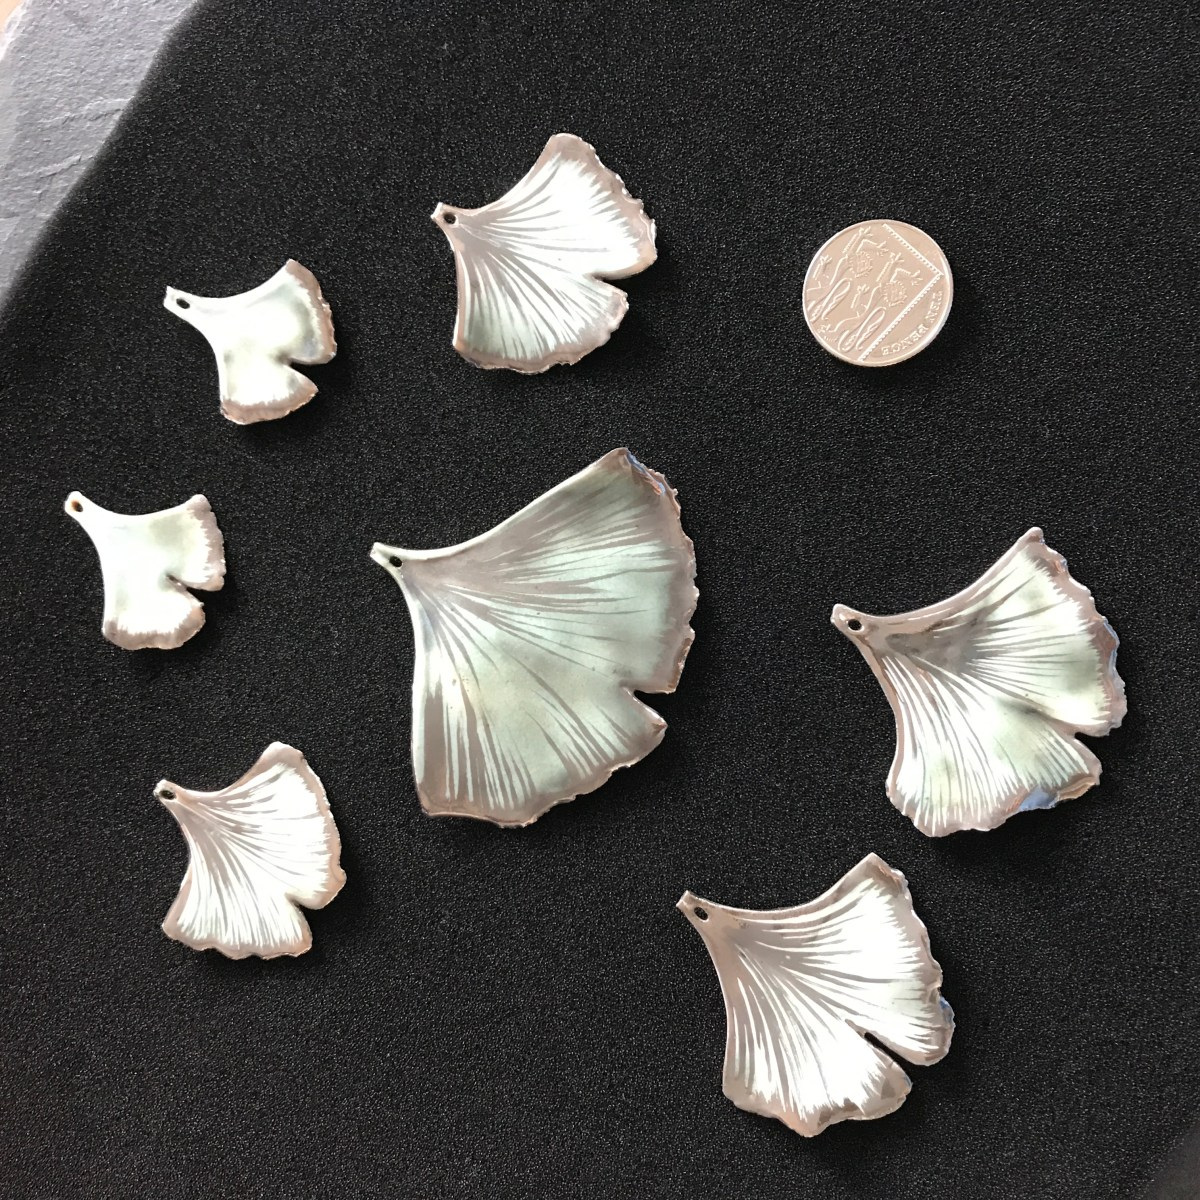 Sizes of Ginkgo Leaf Jewellery